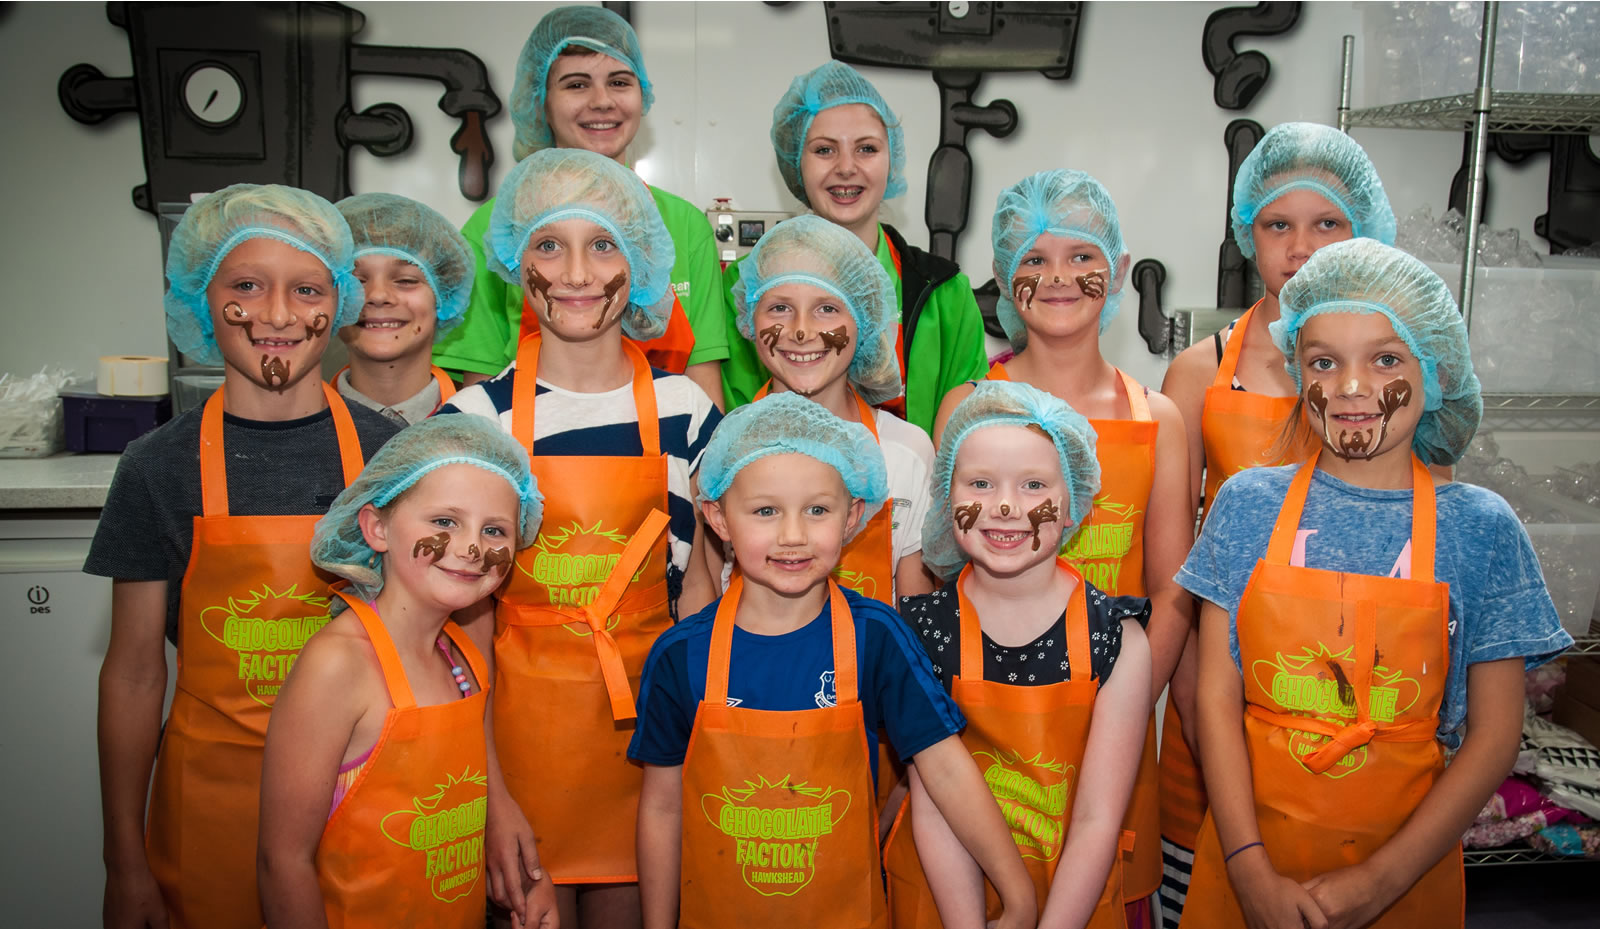 The Chocolate Factory Experience in The Lake District